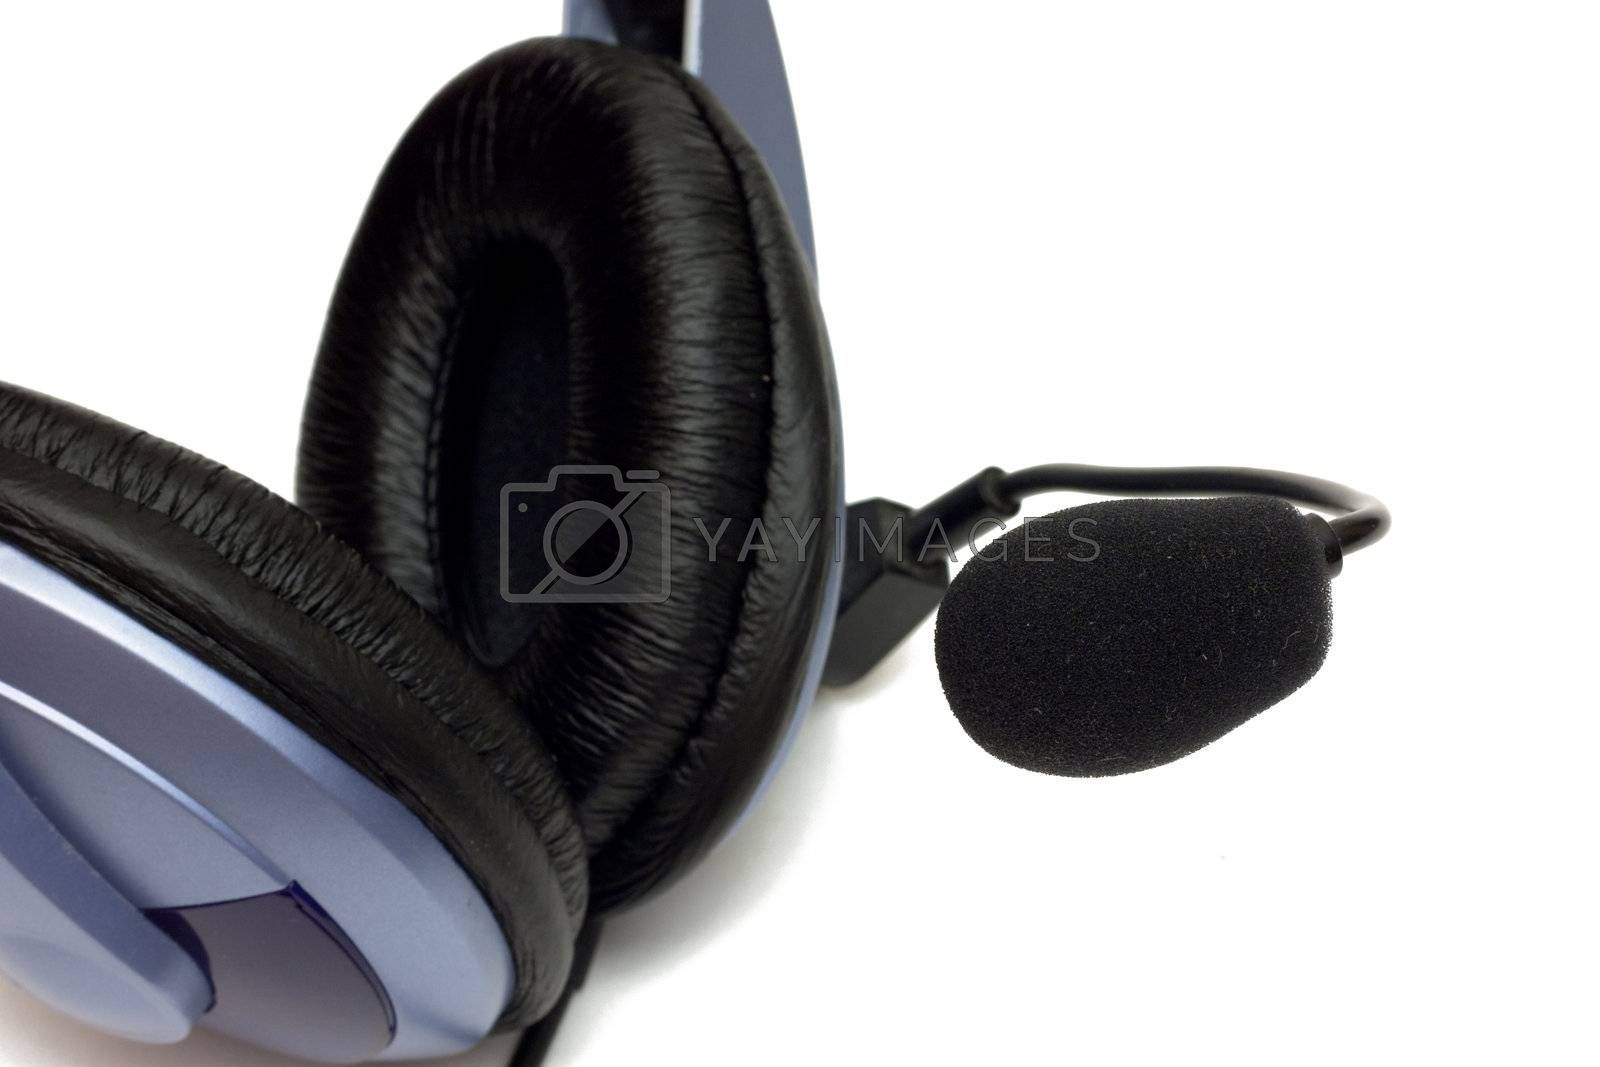 Close up image. Soft black pad of headphones and microphone isolated on white.